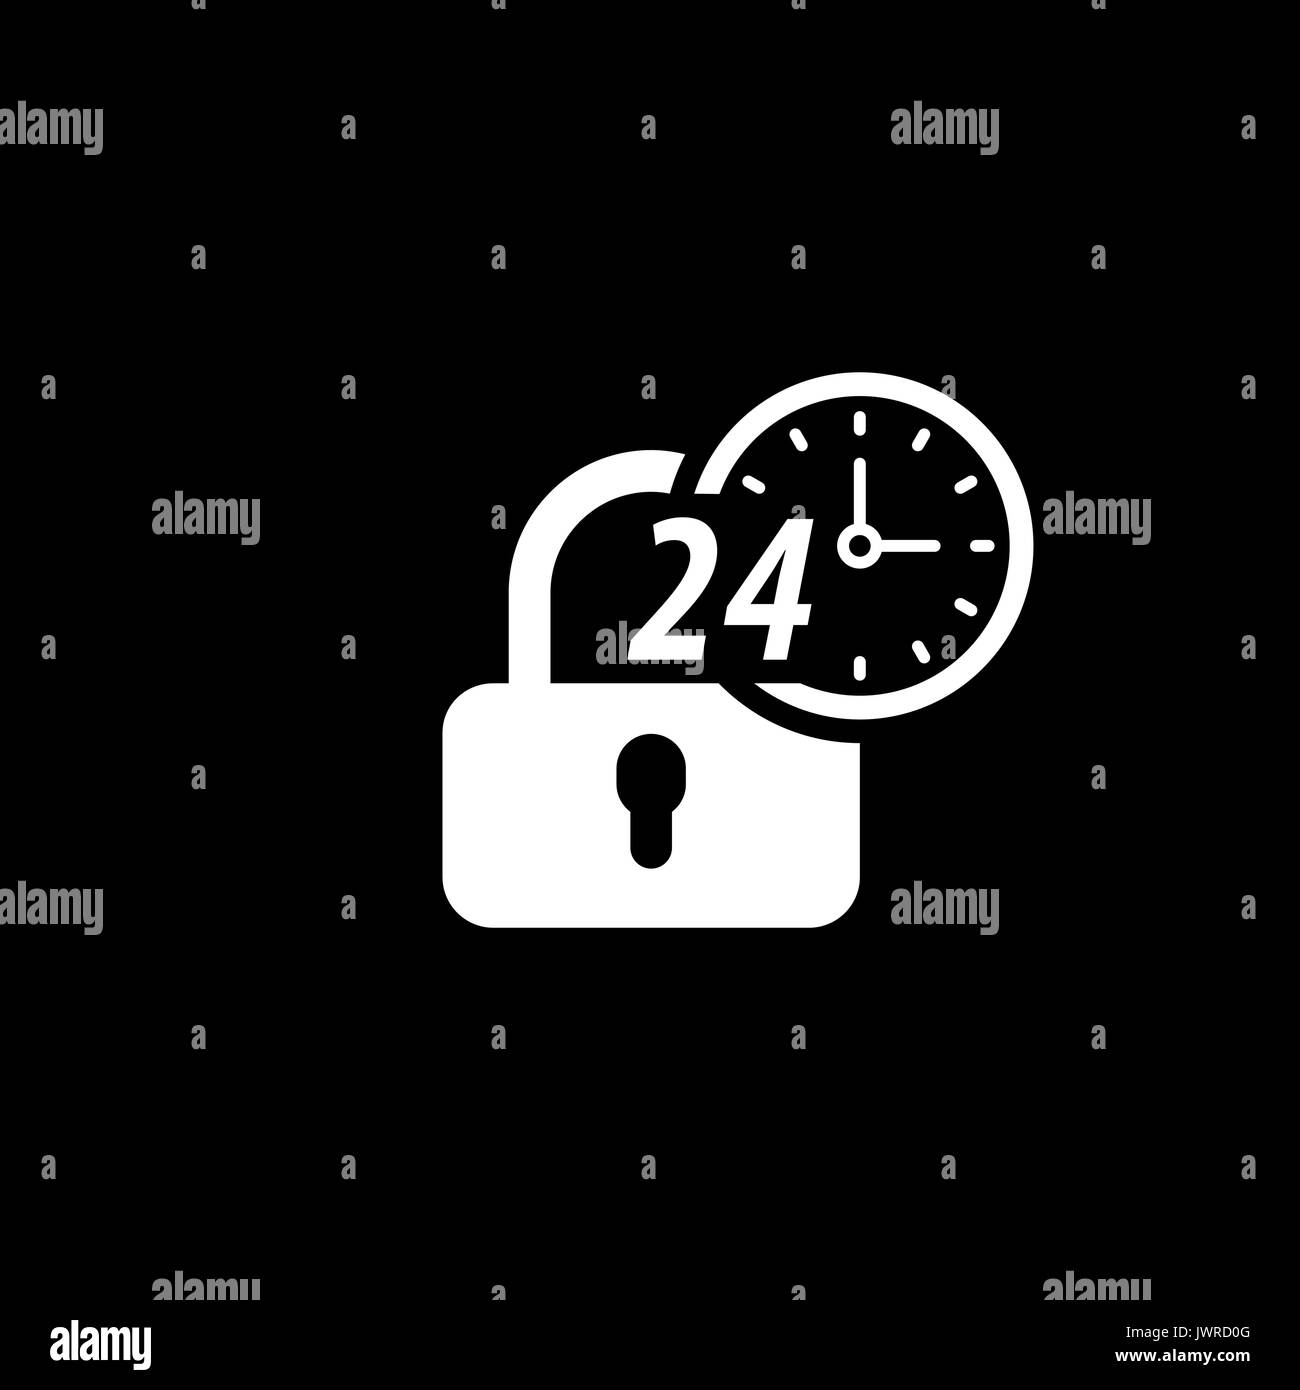 Secured 24-hour Icon. Flat Design. - Stock Image